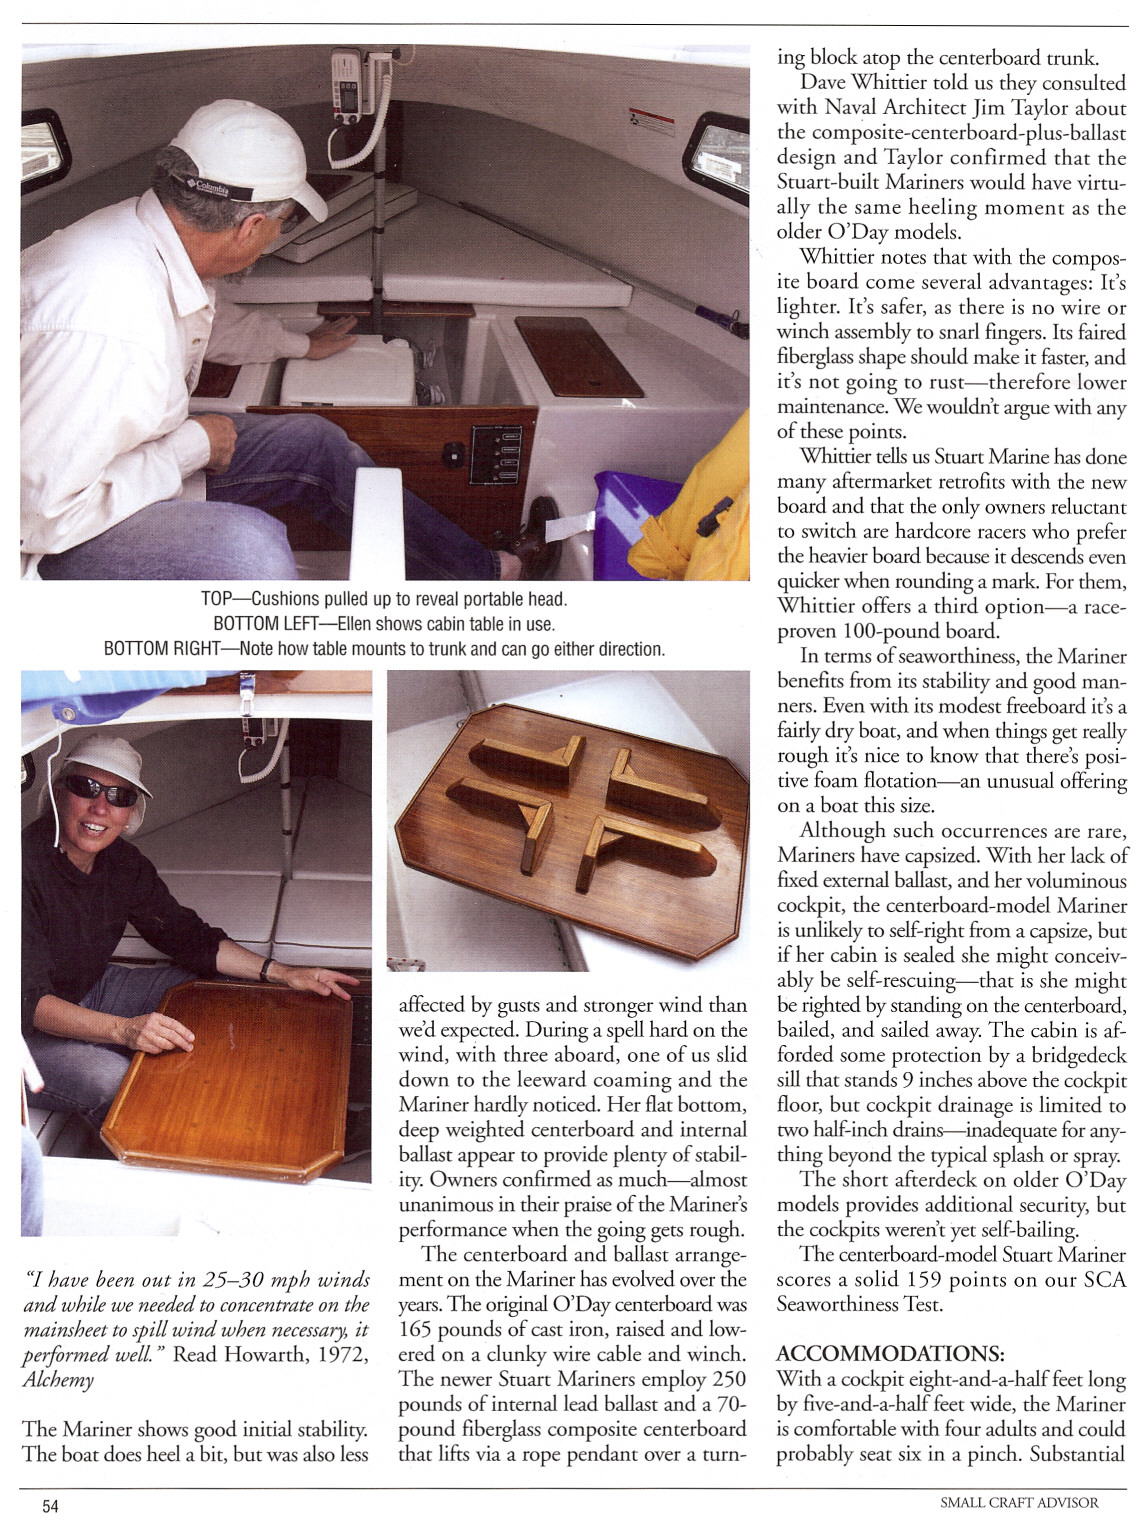 Small Craft Advisor_January_February_2008_No_49_Page_4.jpg